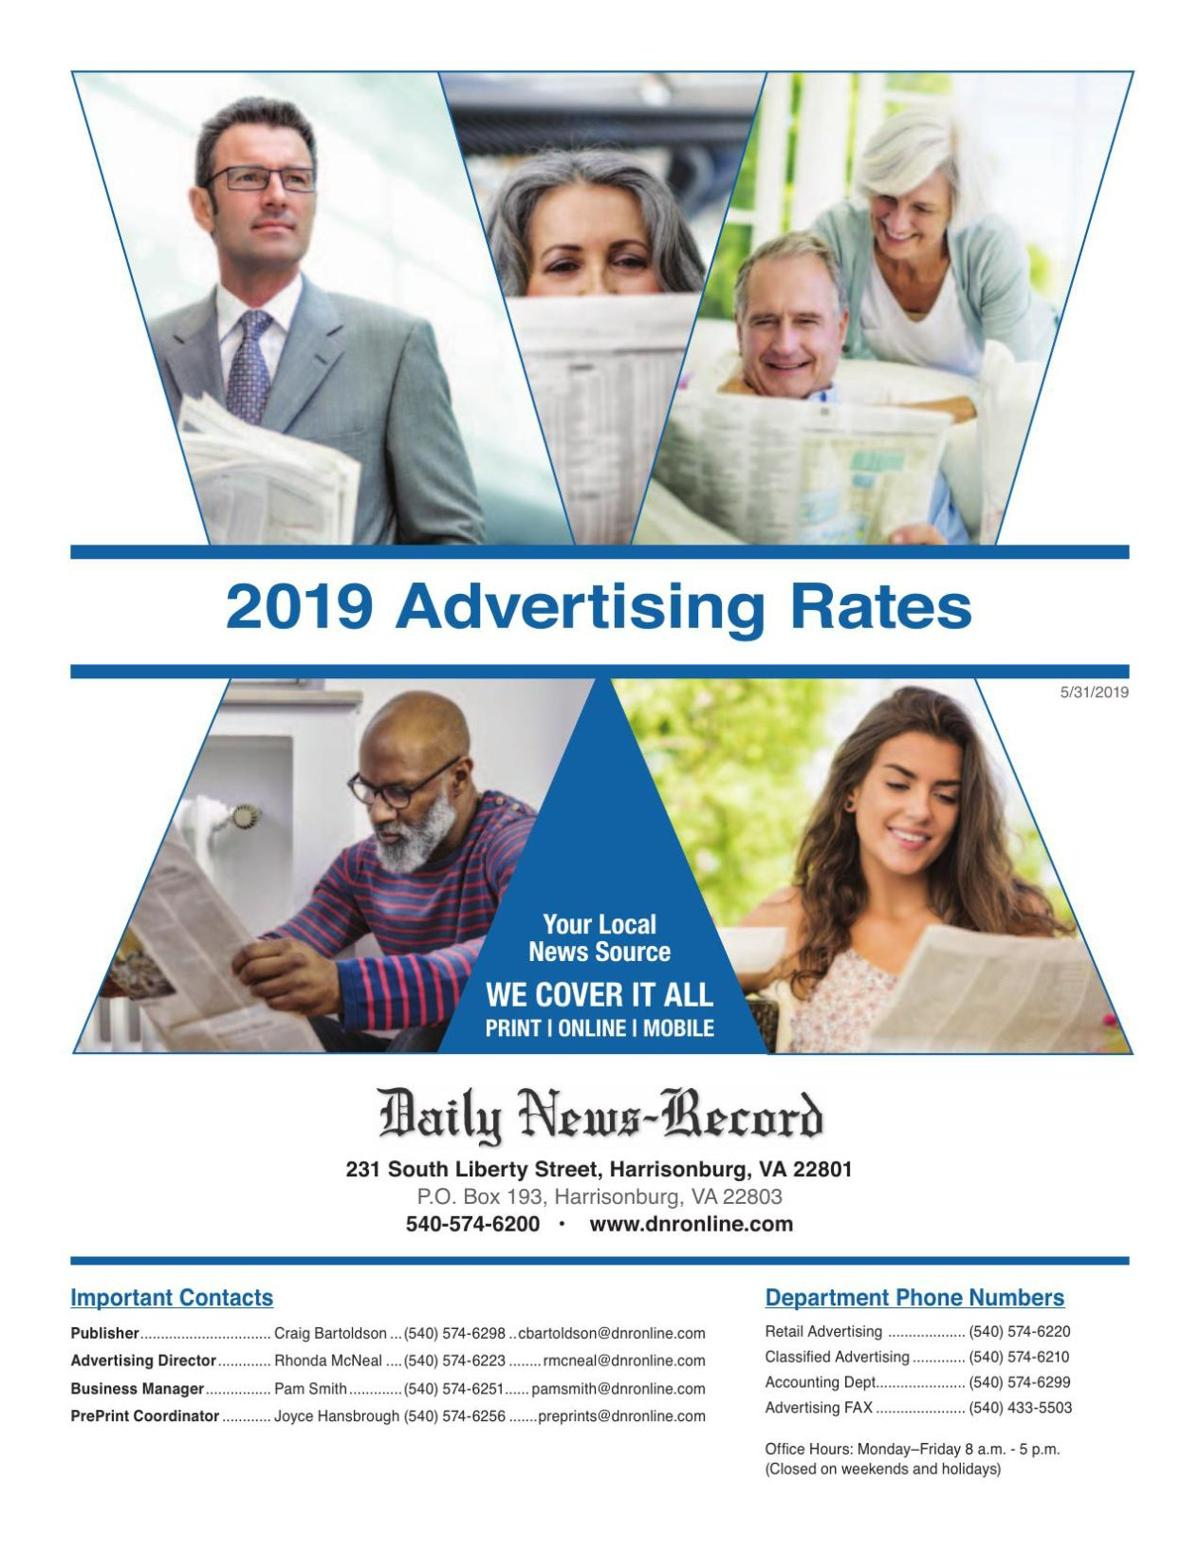 Daily News-Record Rate Guide for 2019